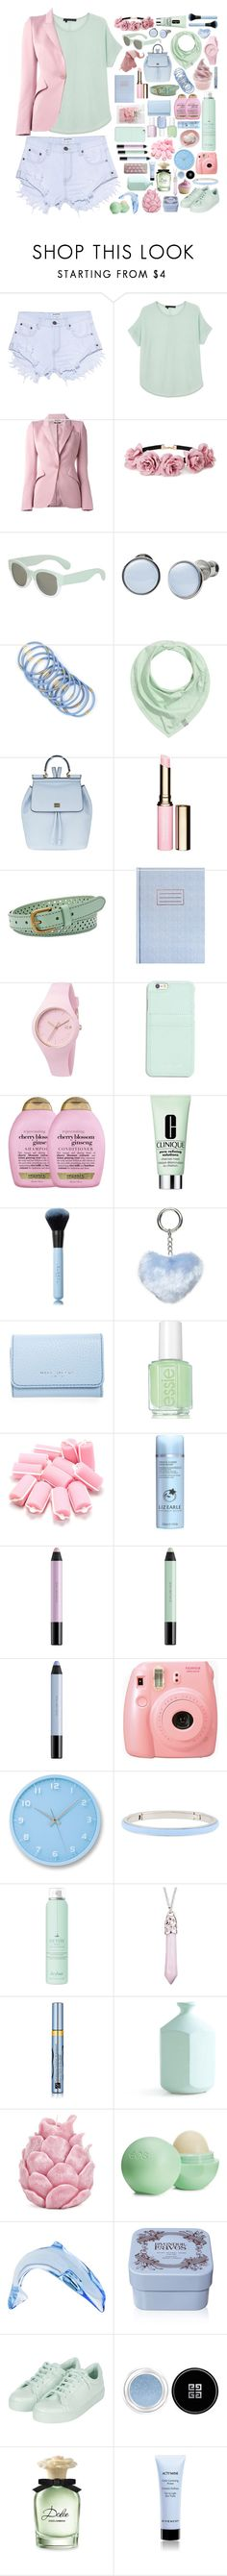 """Mint, Blush, and Baby Blue"" by dragondesign ❤ liked on Polyvore featuring OneTeaspoon, 360 Sweater, Alexander McQueen, Forever 21, Topshop, Skagen, Berry, Dolce&Gabbana, Clarins and FOSSIL"